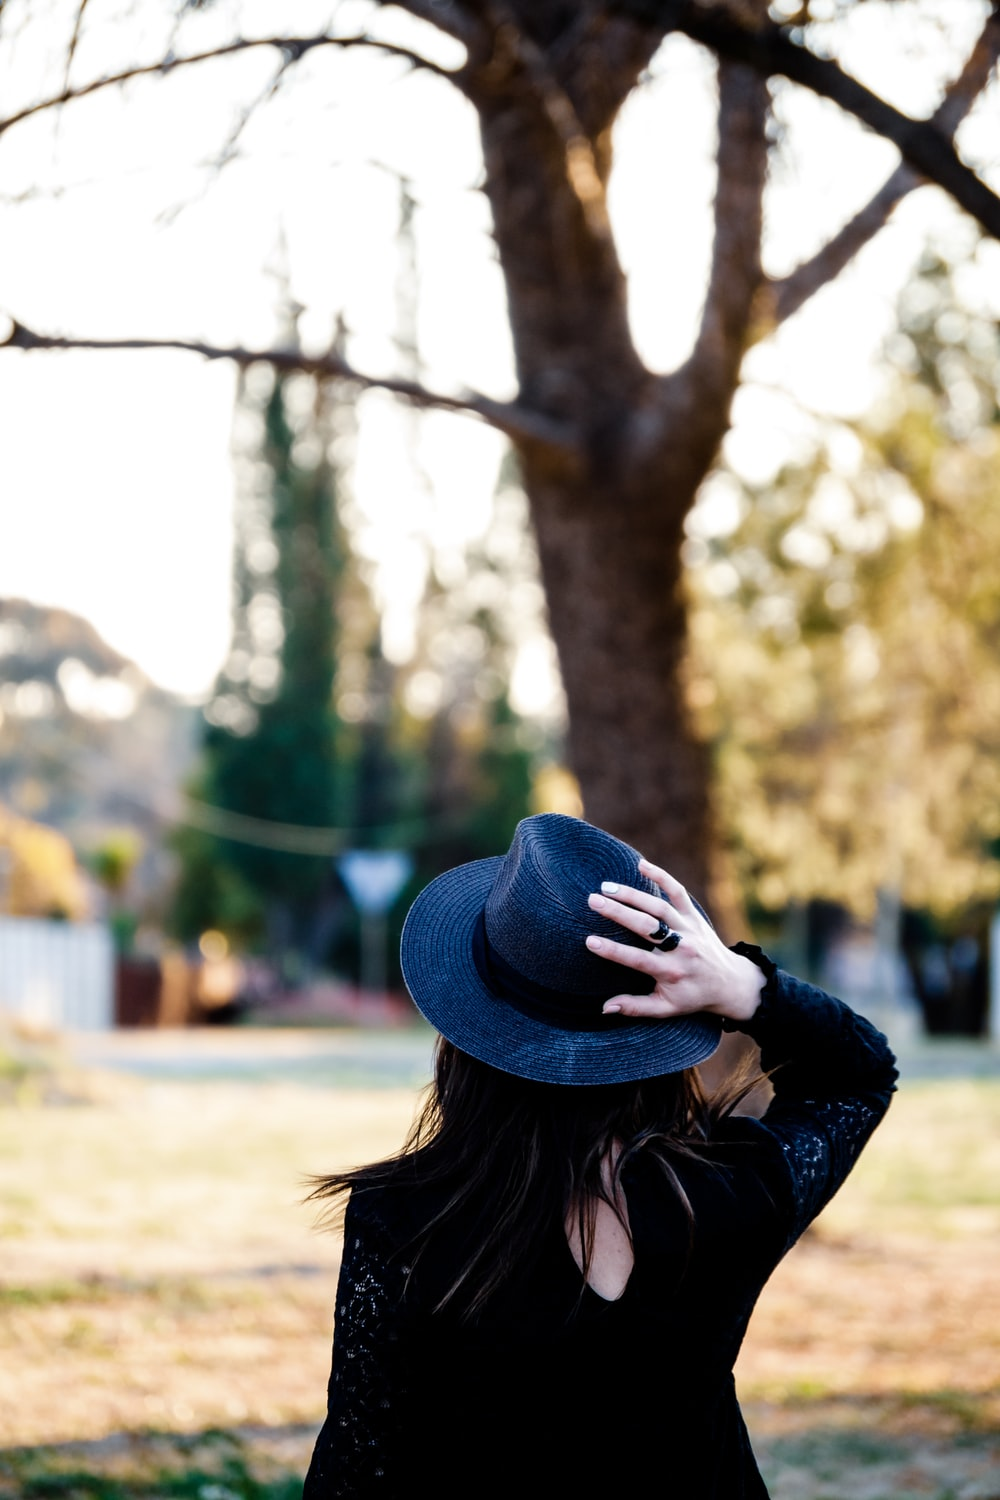 woman in blue hat and black long sleeve shirt standing near trees during daytime